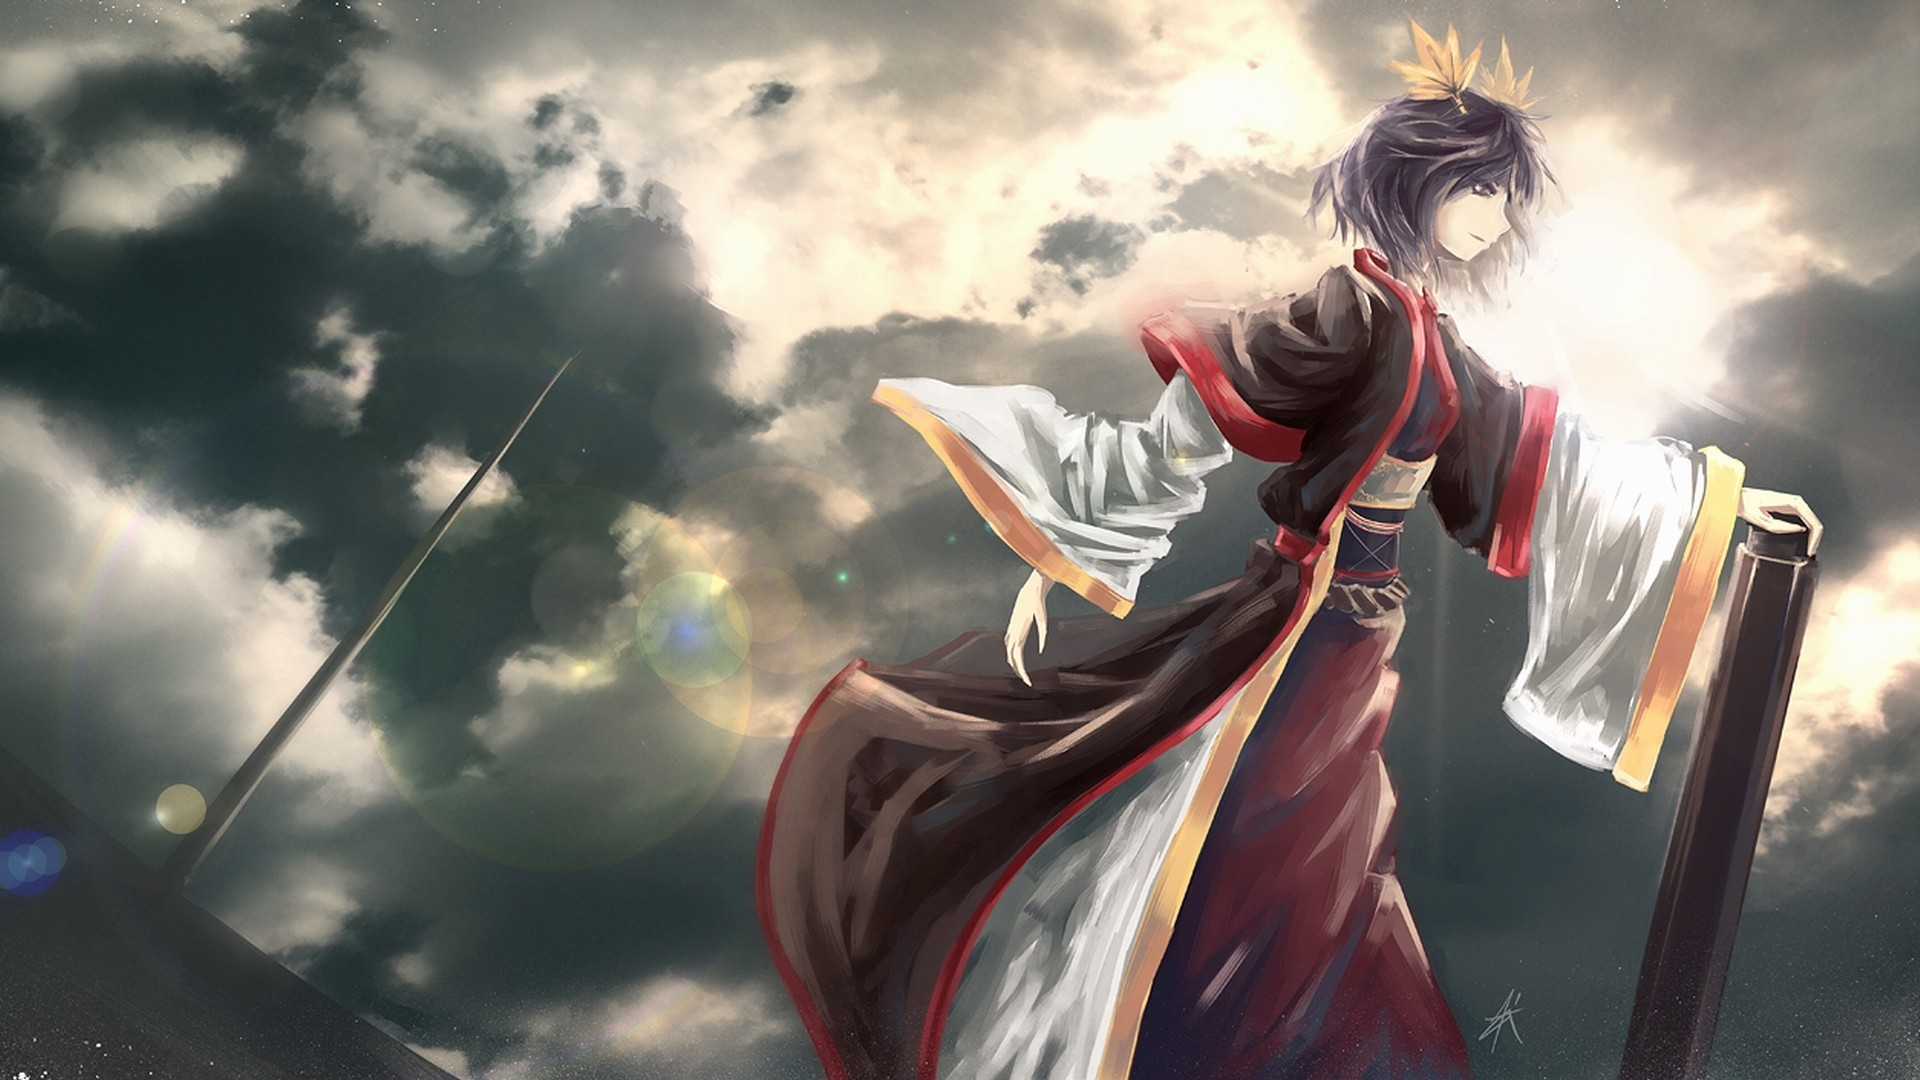 clouds touhou leaves goddess HD Wallpaper